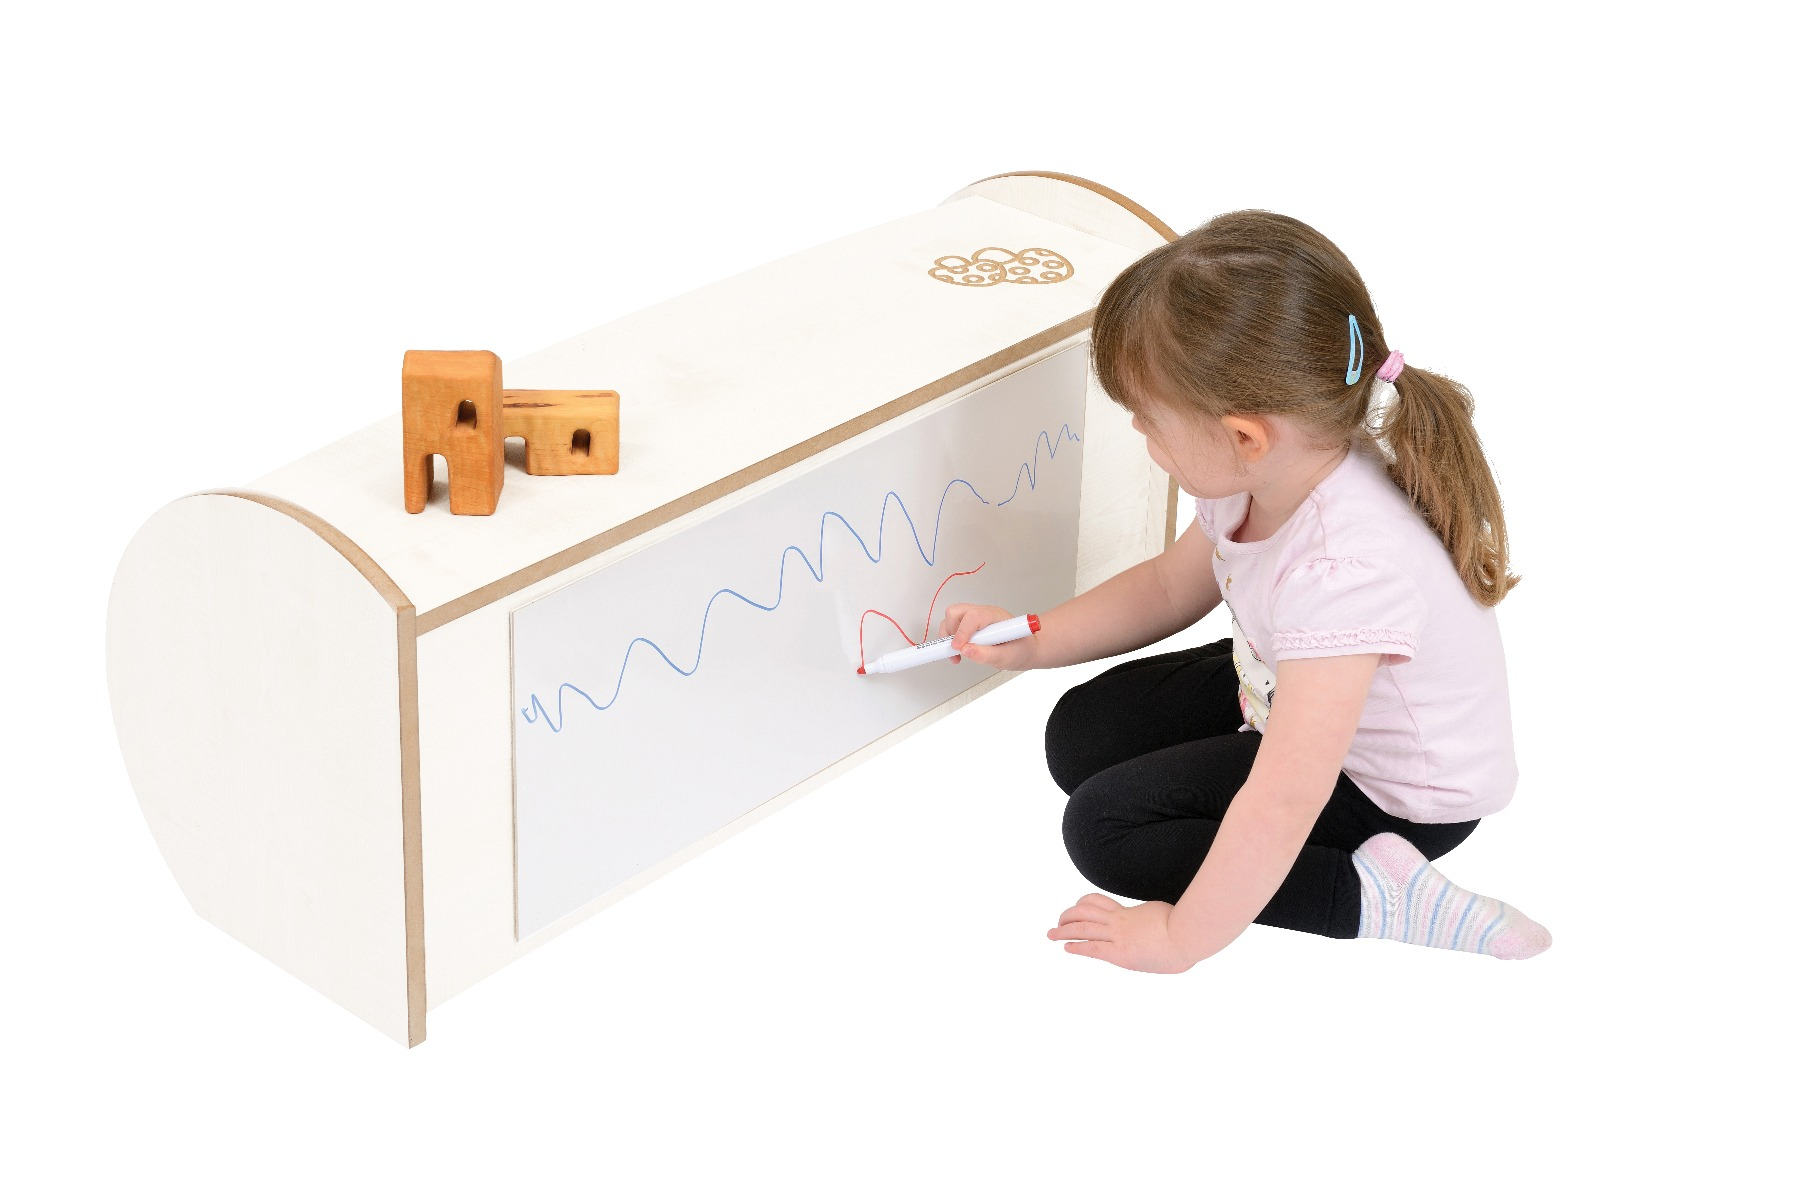 Twoey Toys Mini Range Wooden Shelf Unit with Dry-wipe Whiteboard Back